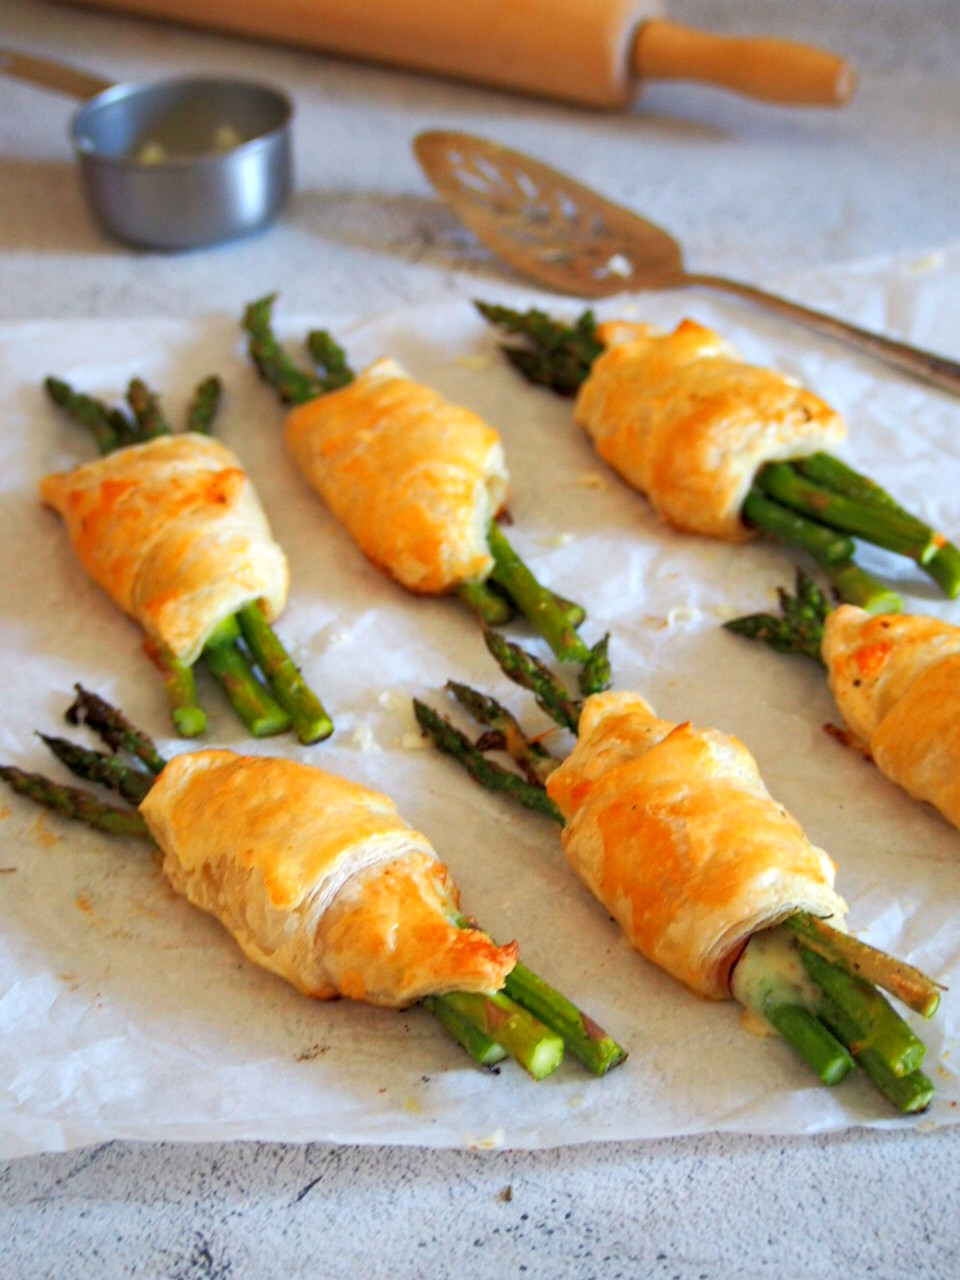 Asparagus and Ham filled puff pastries on a parchment paper.